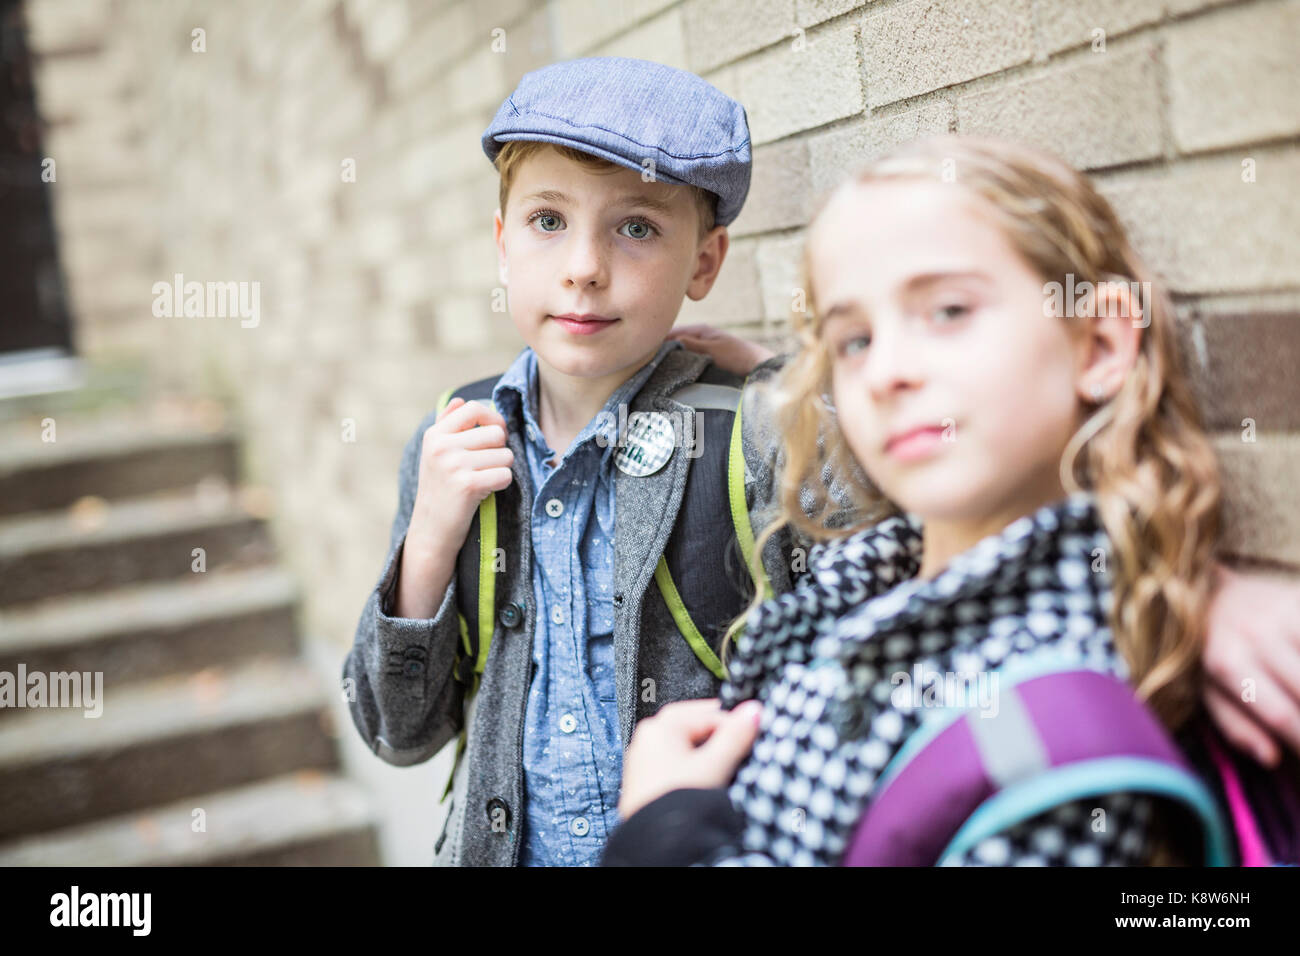 Pre teen child at school - Stock Image